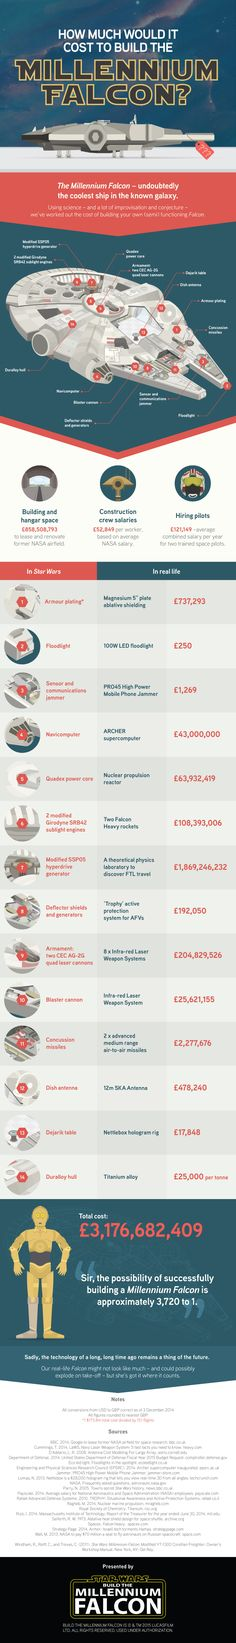 Infographic: How Much Would It Cost To Build The Millennium Falcon? - DesignTAXI.com